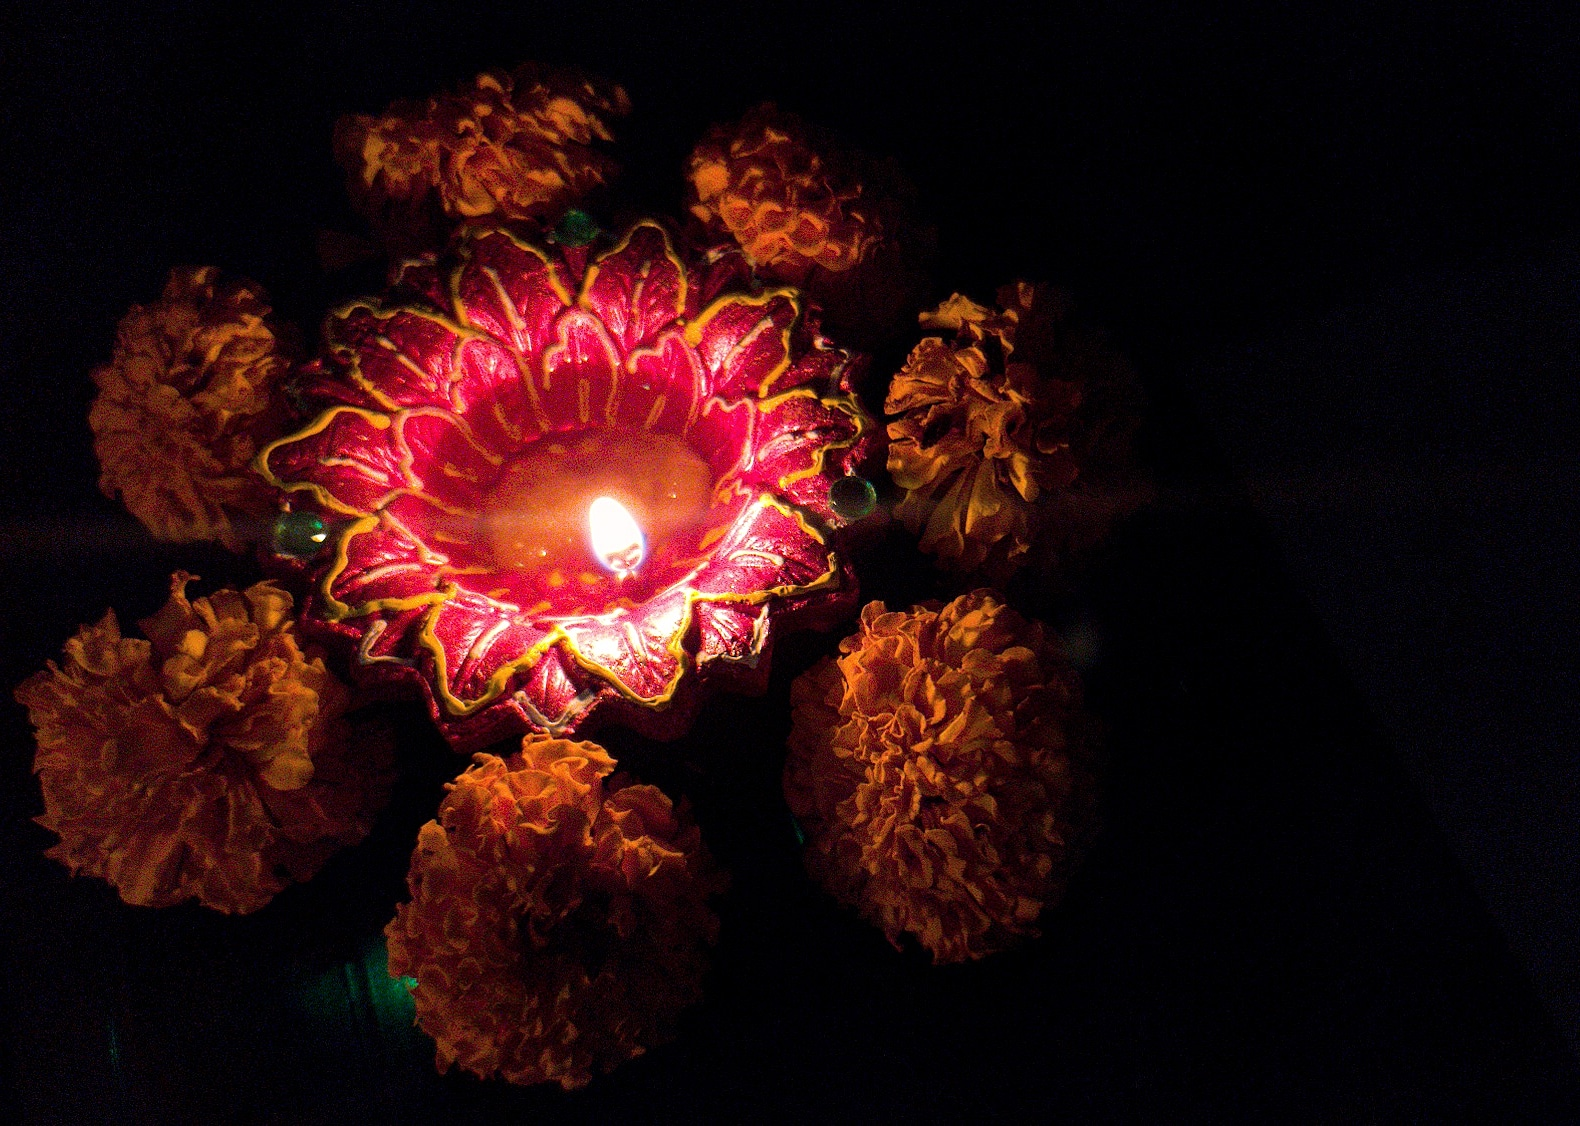 An eco friendly Diwali is all about celebrating with the lights and flowers and love. Here I tried tk capture the gist of the Diwali and how contrasting and beautiful eberything looks in fire-light